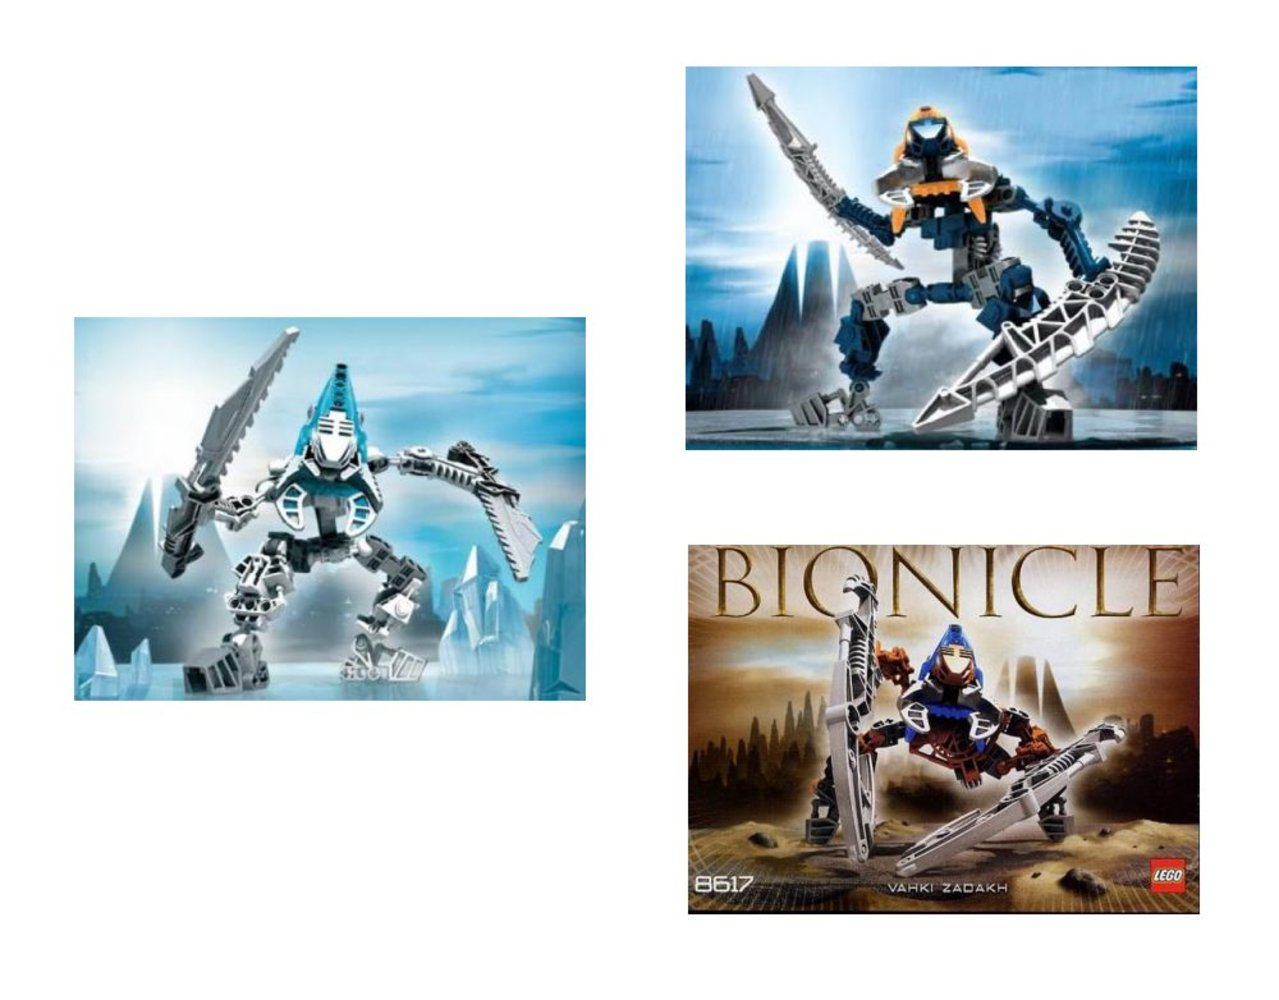 Bionicle Bonus Pack (8615 8617 8619 plus three Bionicle Comic books)